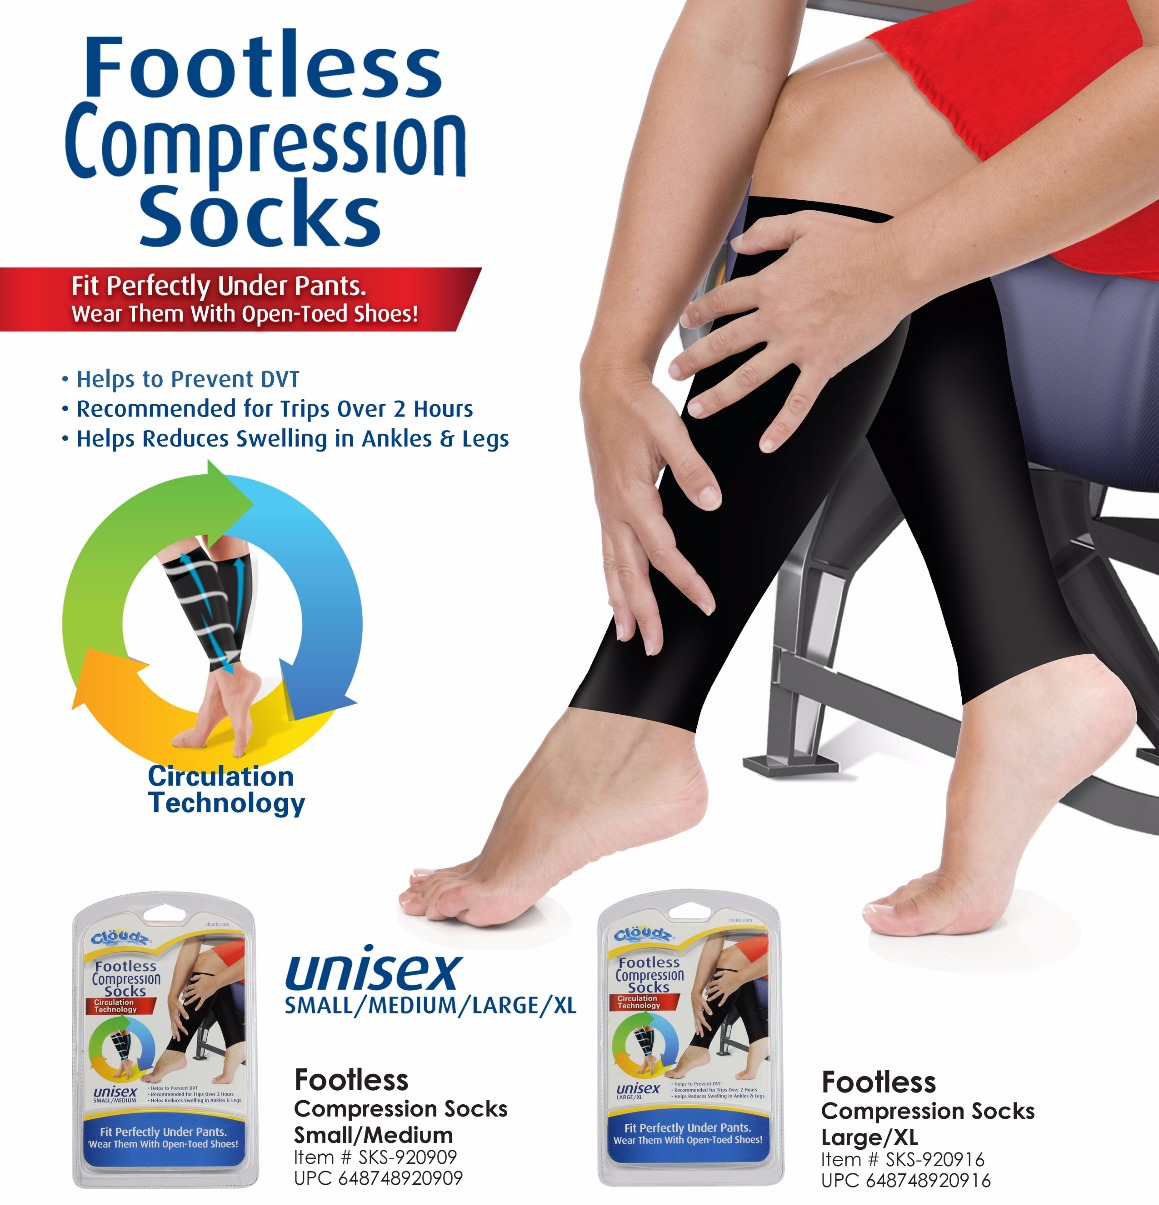 SNI_Today_footless Compression socks_edited